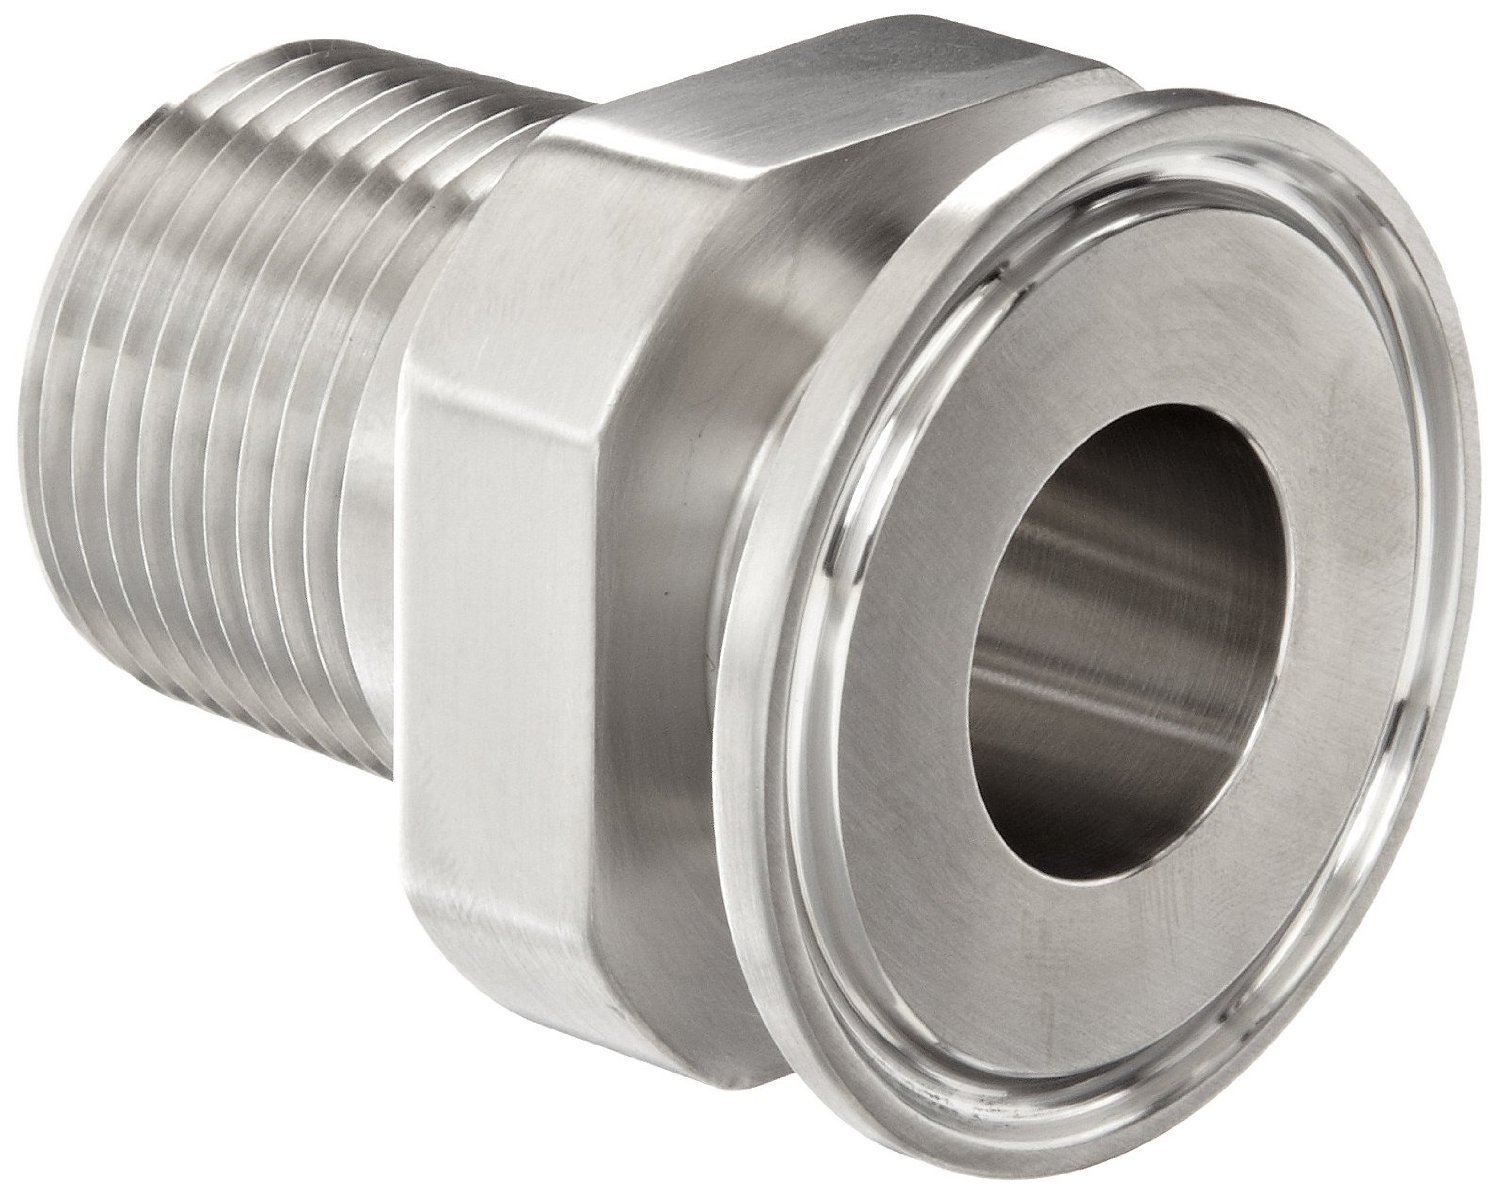 Dixon 21MP-R100 Stainless Steel 304 Sanitary Fitting, Clamp Adapter, 1'' Tube OD x 1'' NPT Male